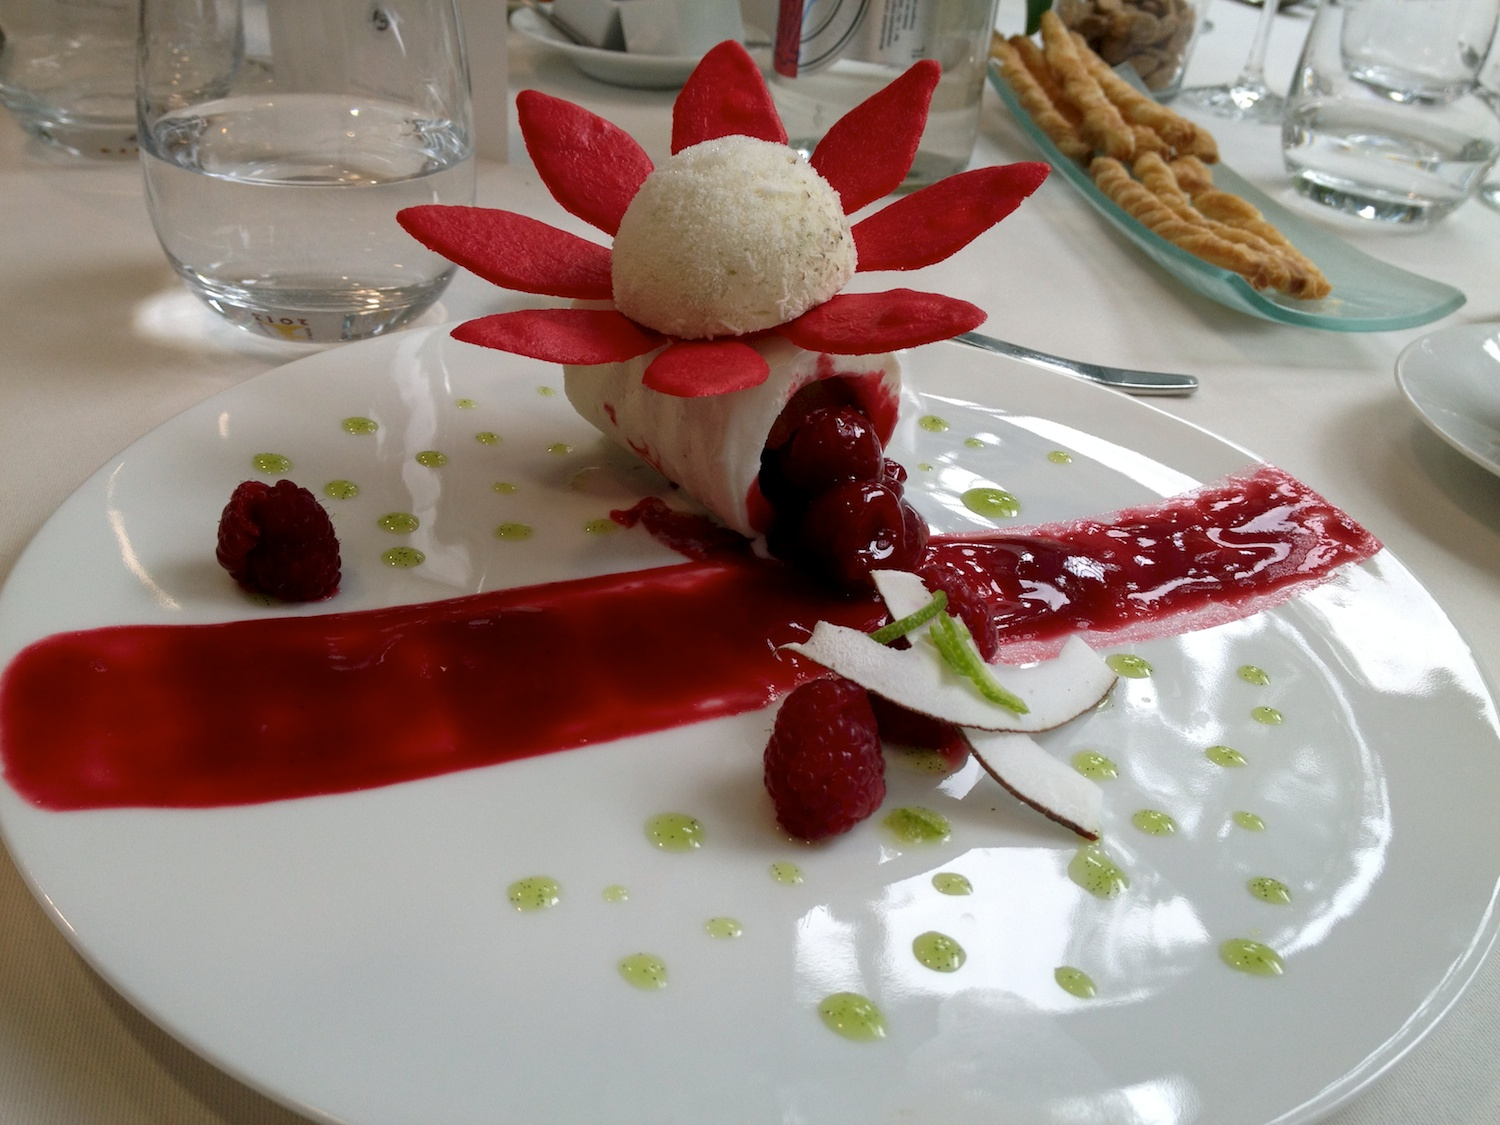 One of our amazing desserts